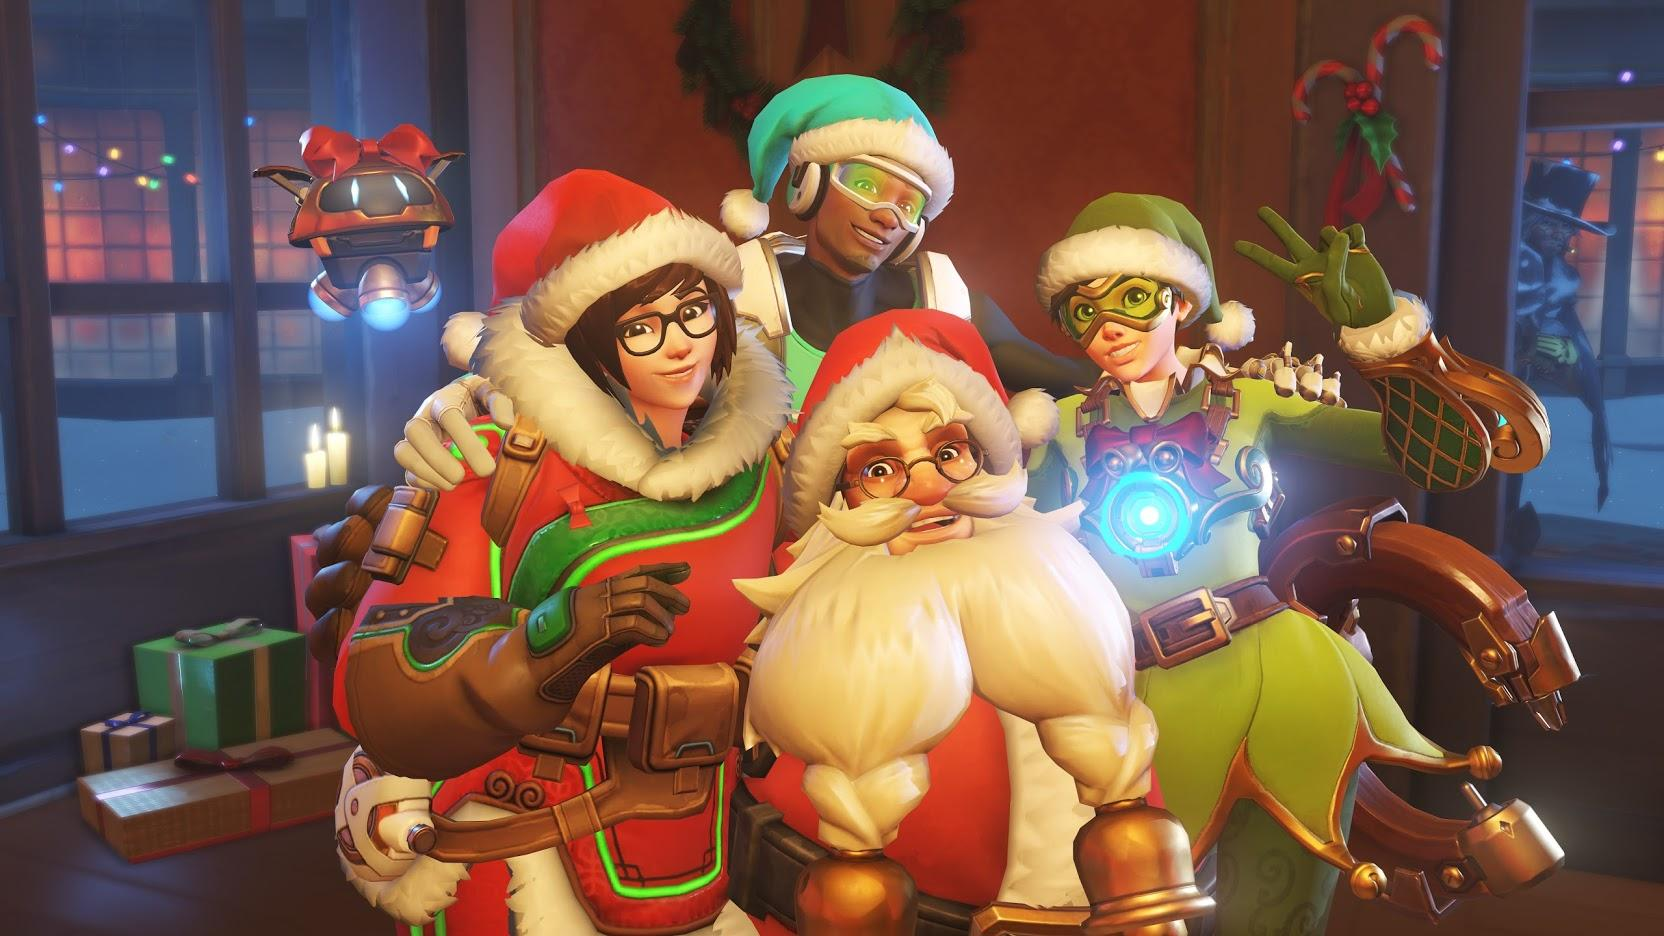 Overwatch's Winter Wonderland event will return next week